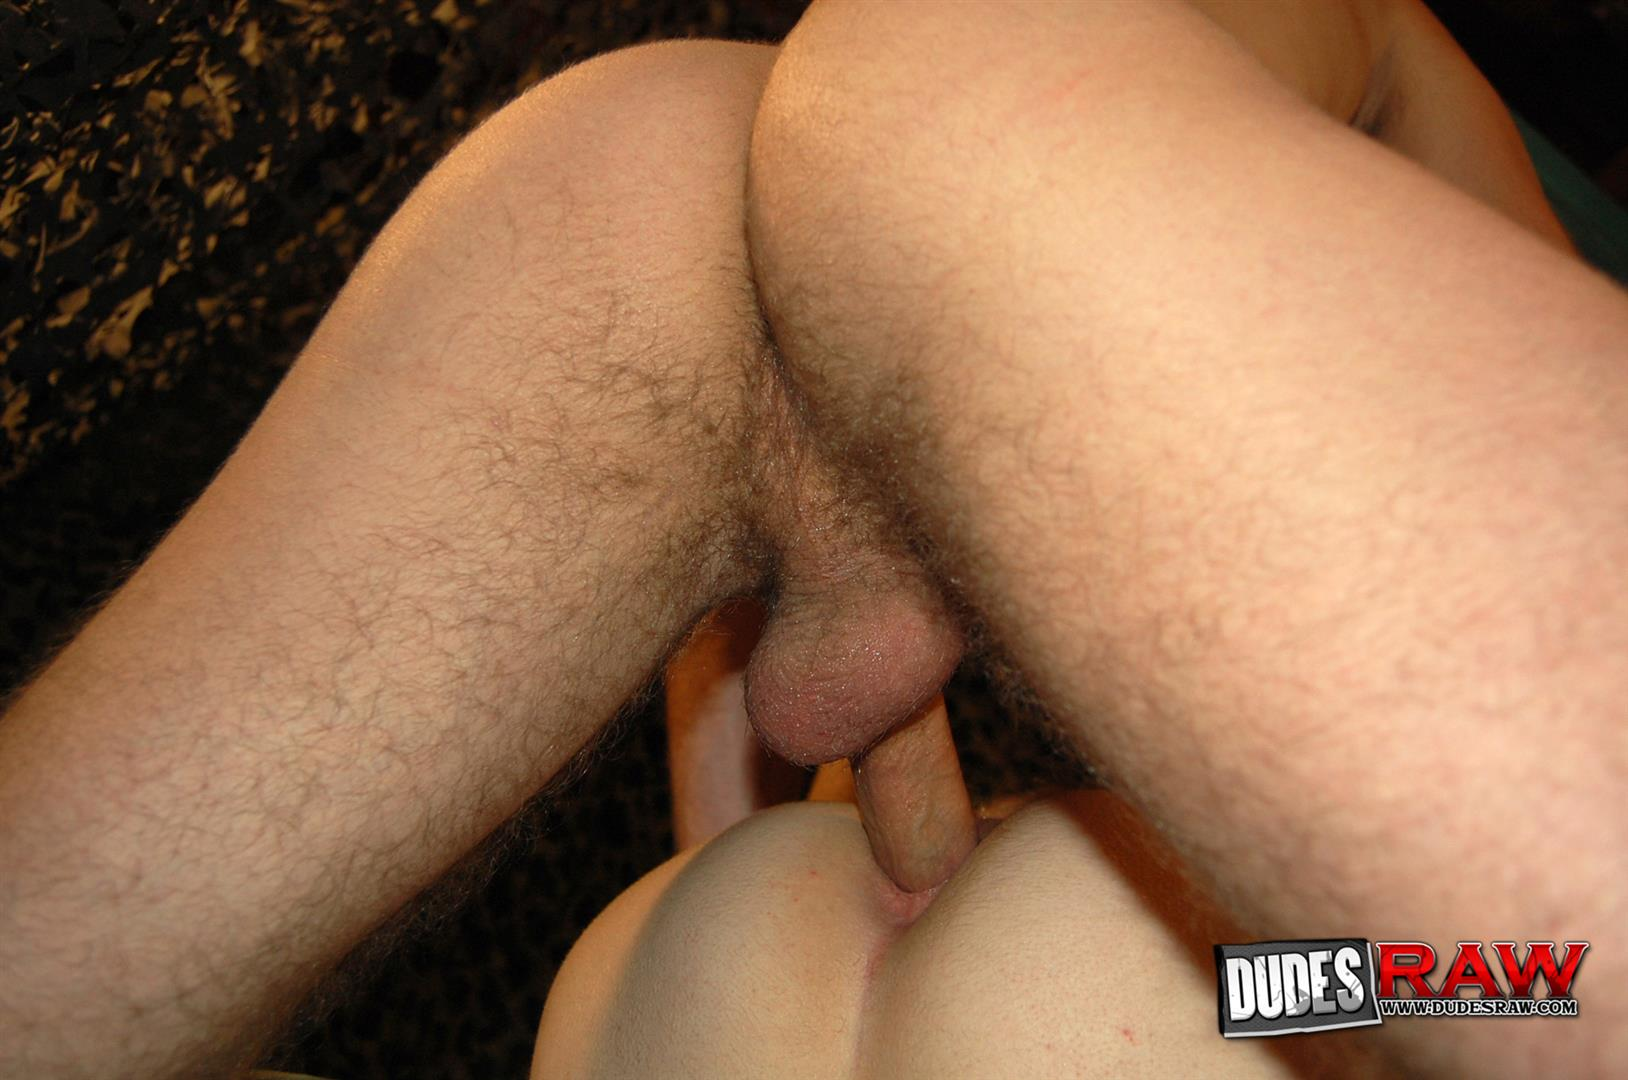 Dudes Raw Jacques Satori and Zeke Stardust Army Guys Barebacking Amateur Gay Porn 32 Army Guys Discover Gay Sex and Bareback Fuck Each Other